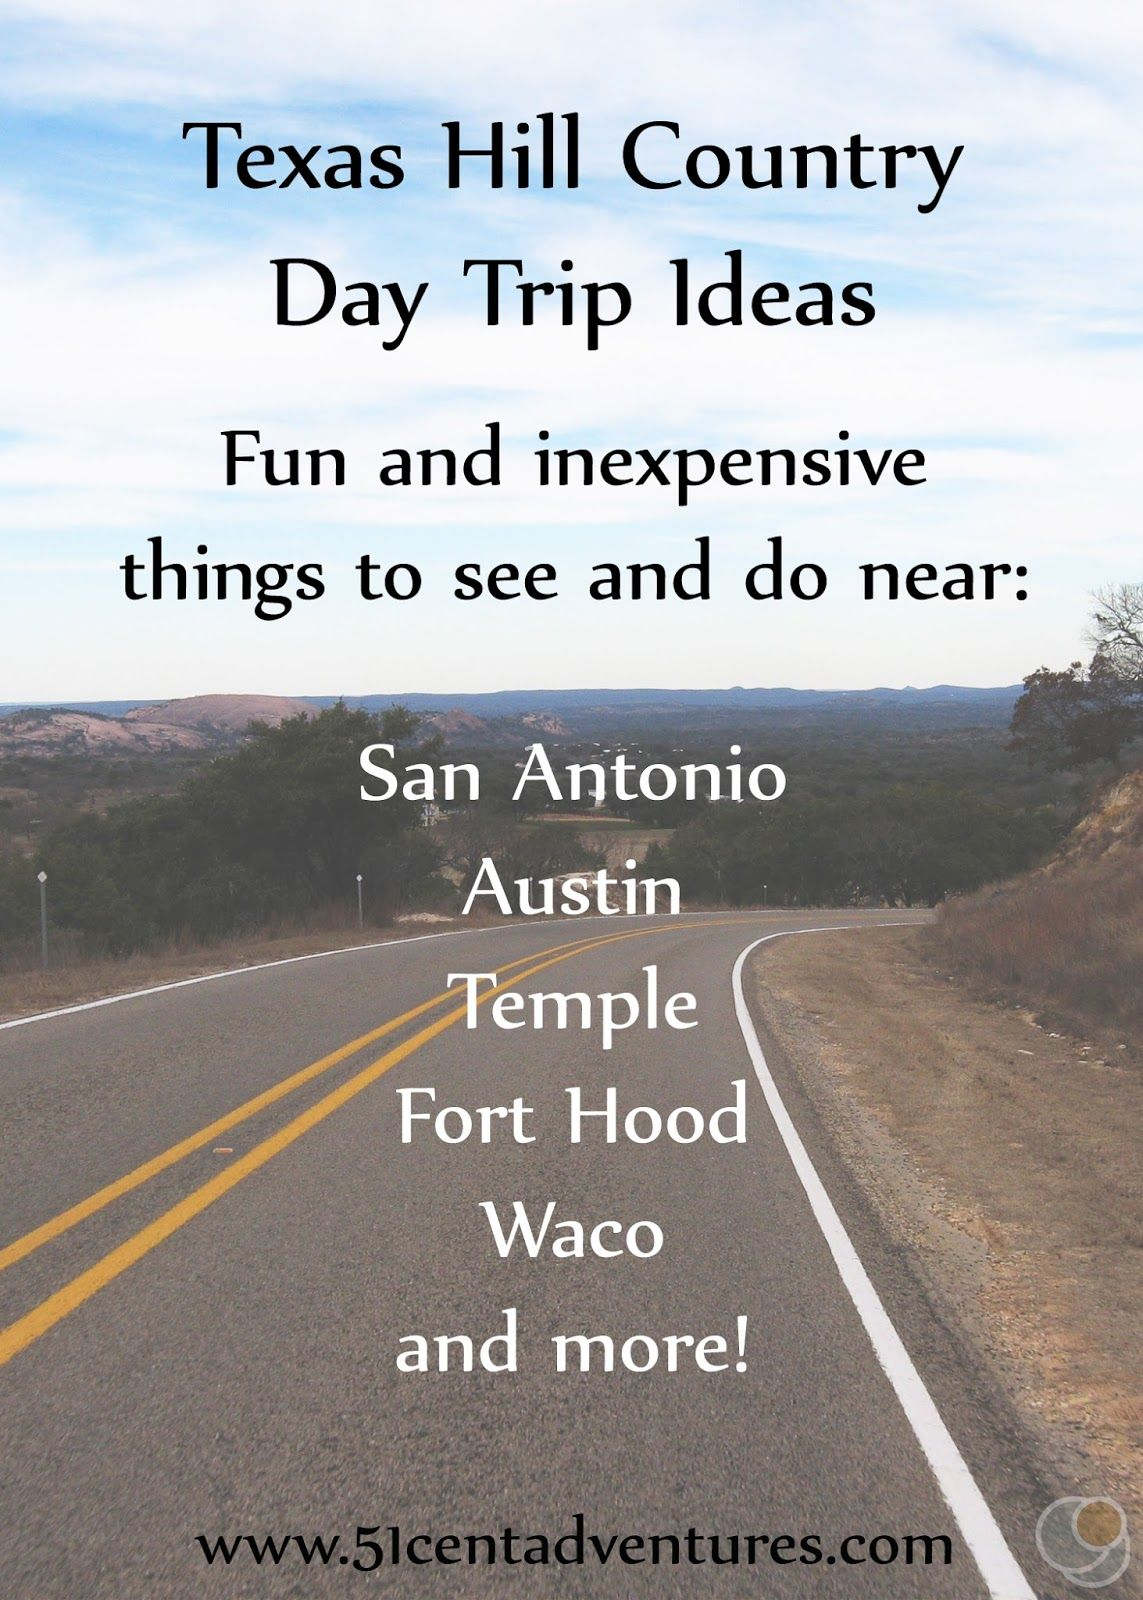 texas hill country day trip ideas texas adventures pinterest urlaub. Black Bedroom Furniture Sets. Home Design Ideas